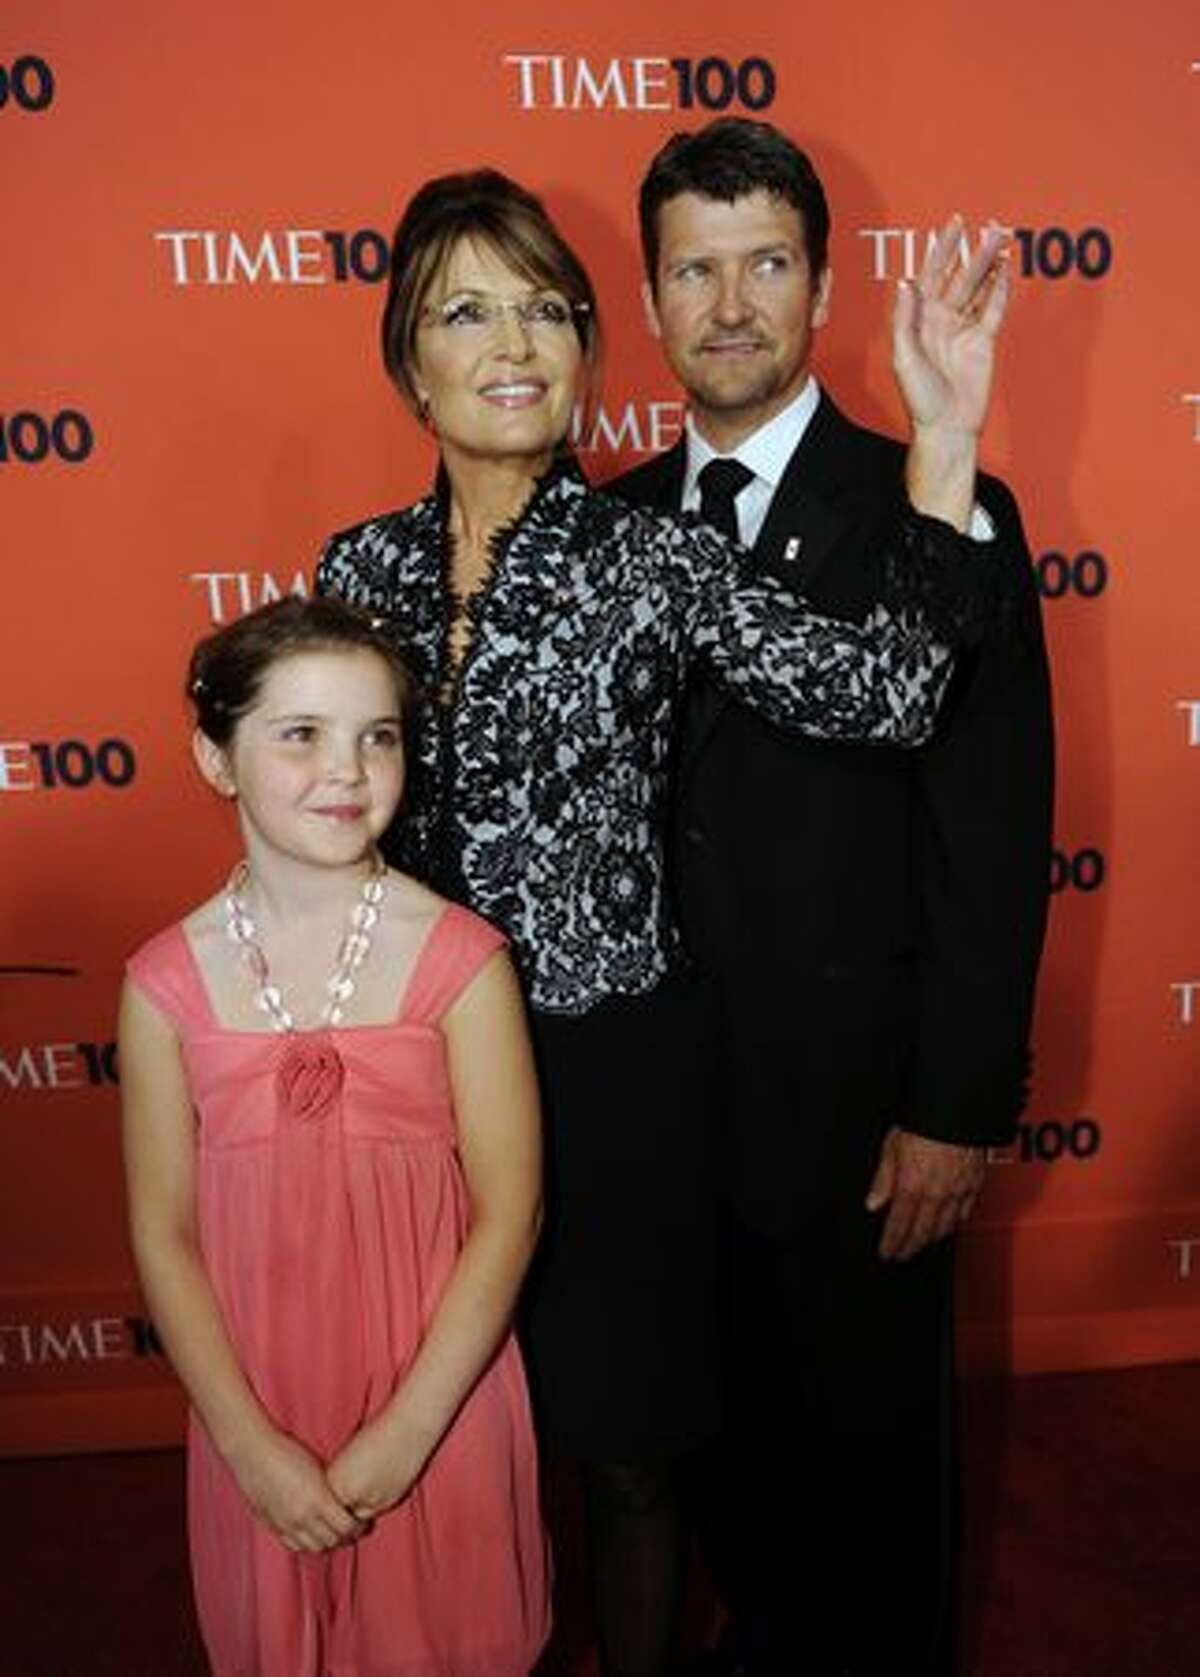 Todd and Sarah Palin and their daughter Piper attend.